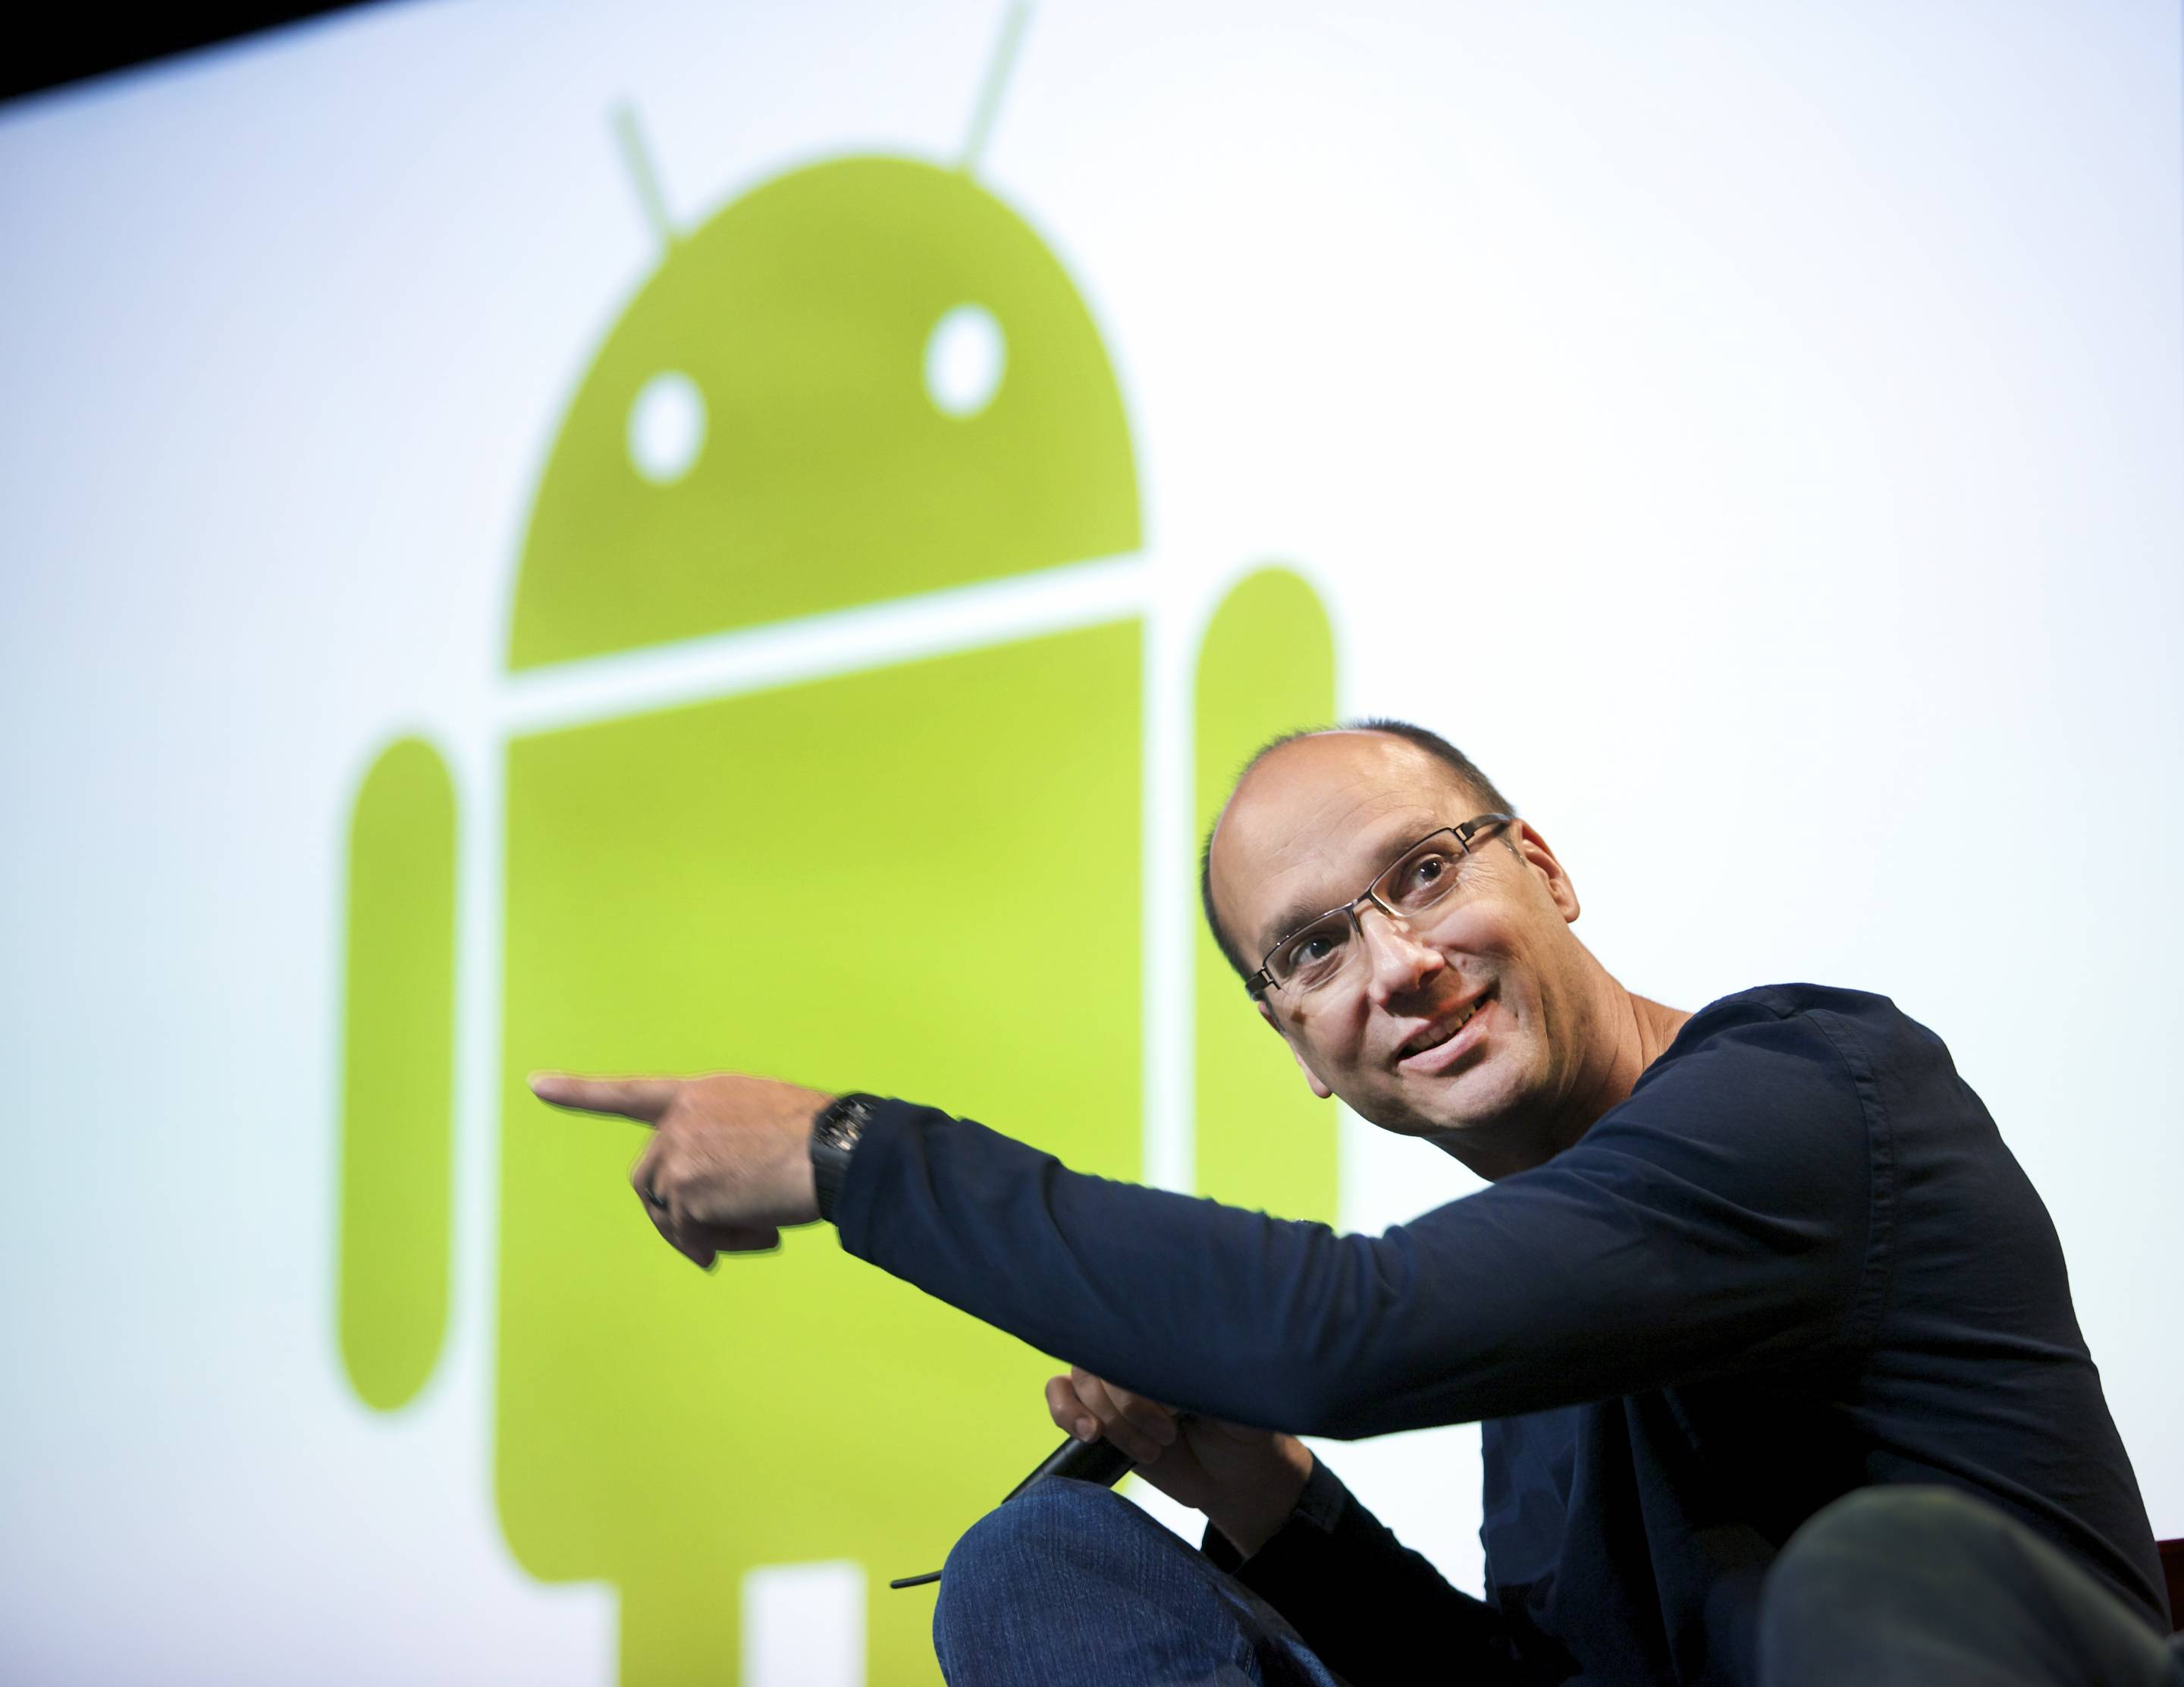 USA - Technology - Google Launches New Chrome, Android Products and Services at Google I/O